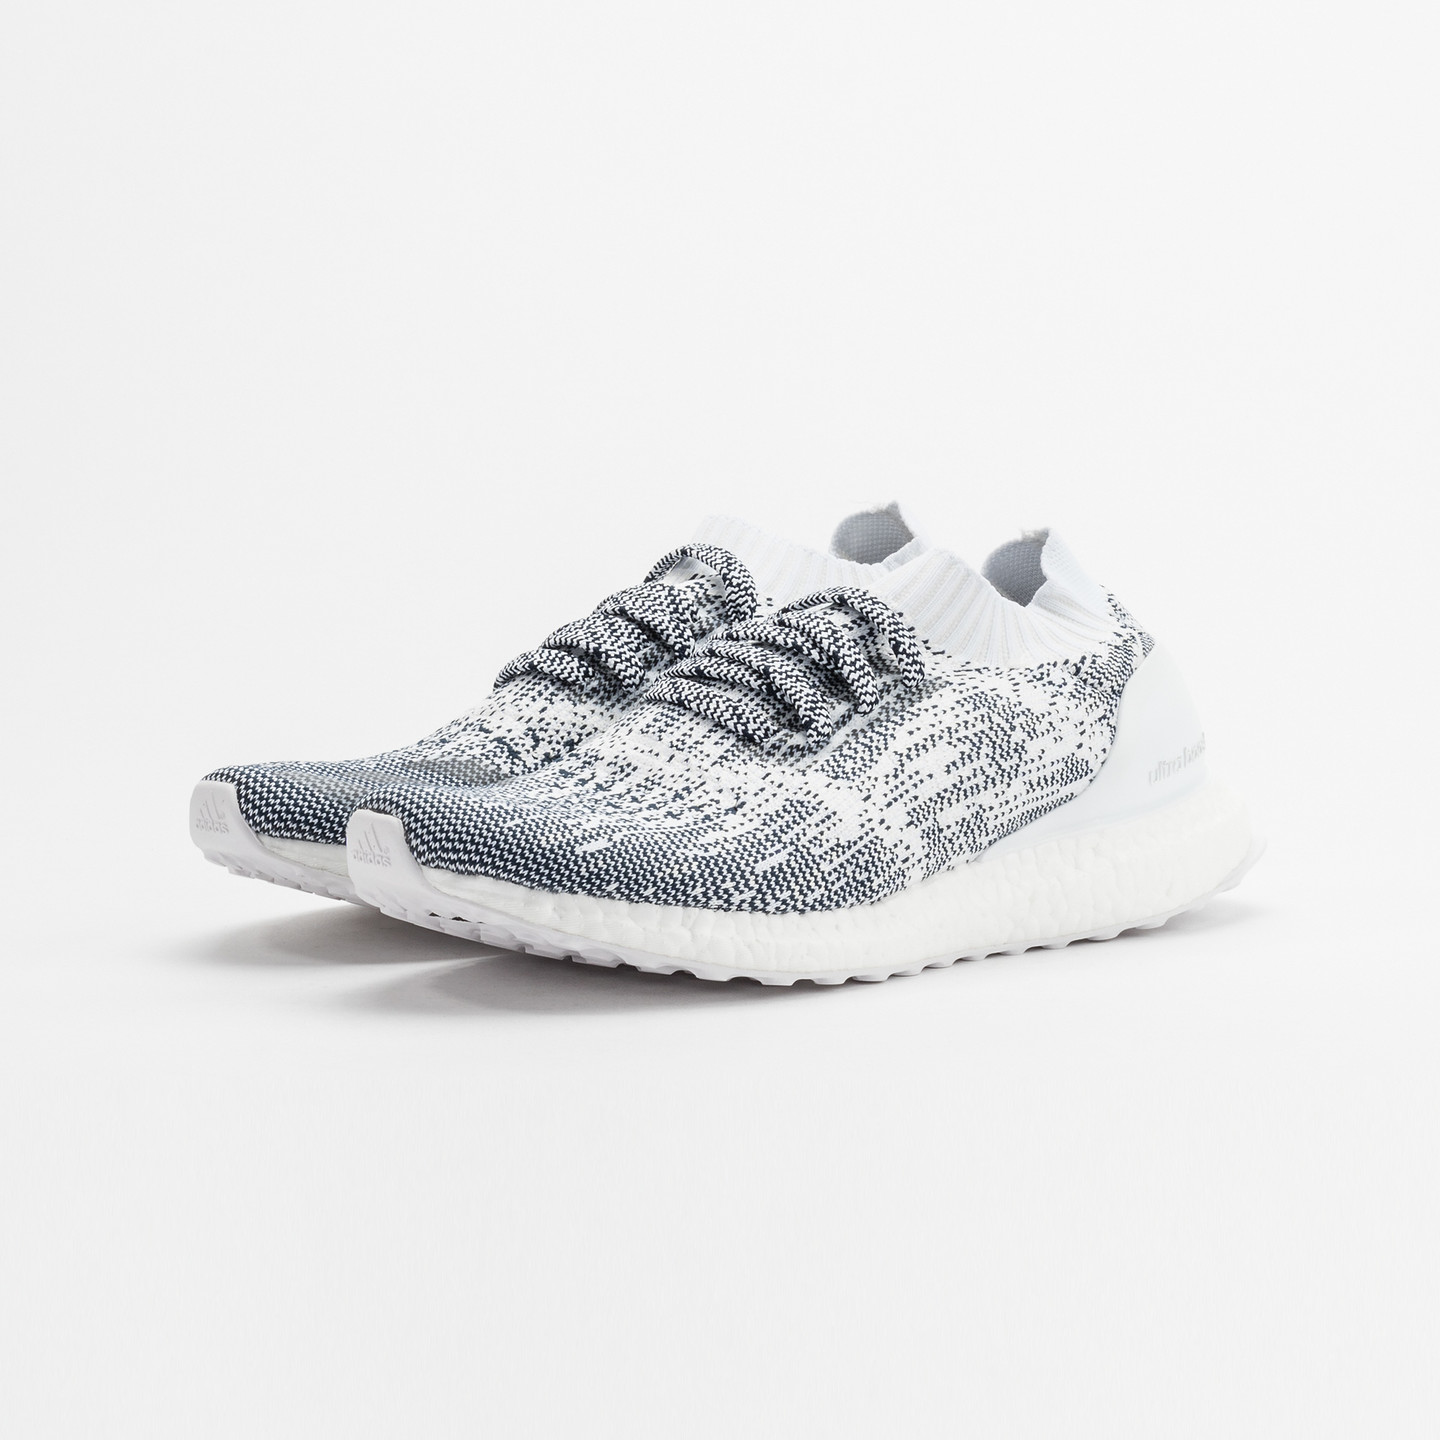 Adidas Ultra Boost Uncaged 'Oreo' White / Black BA9616-40.66